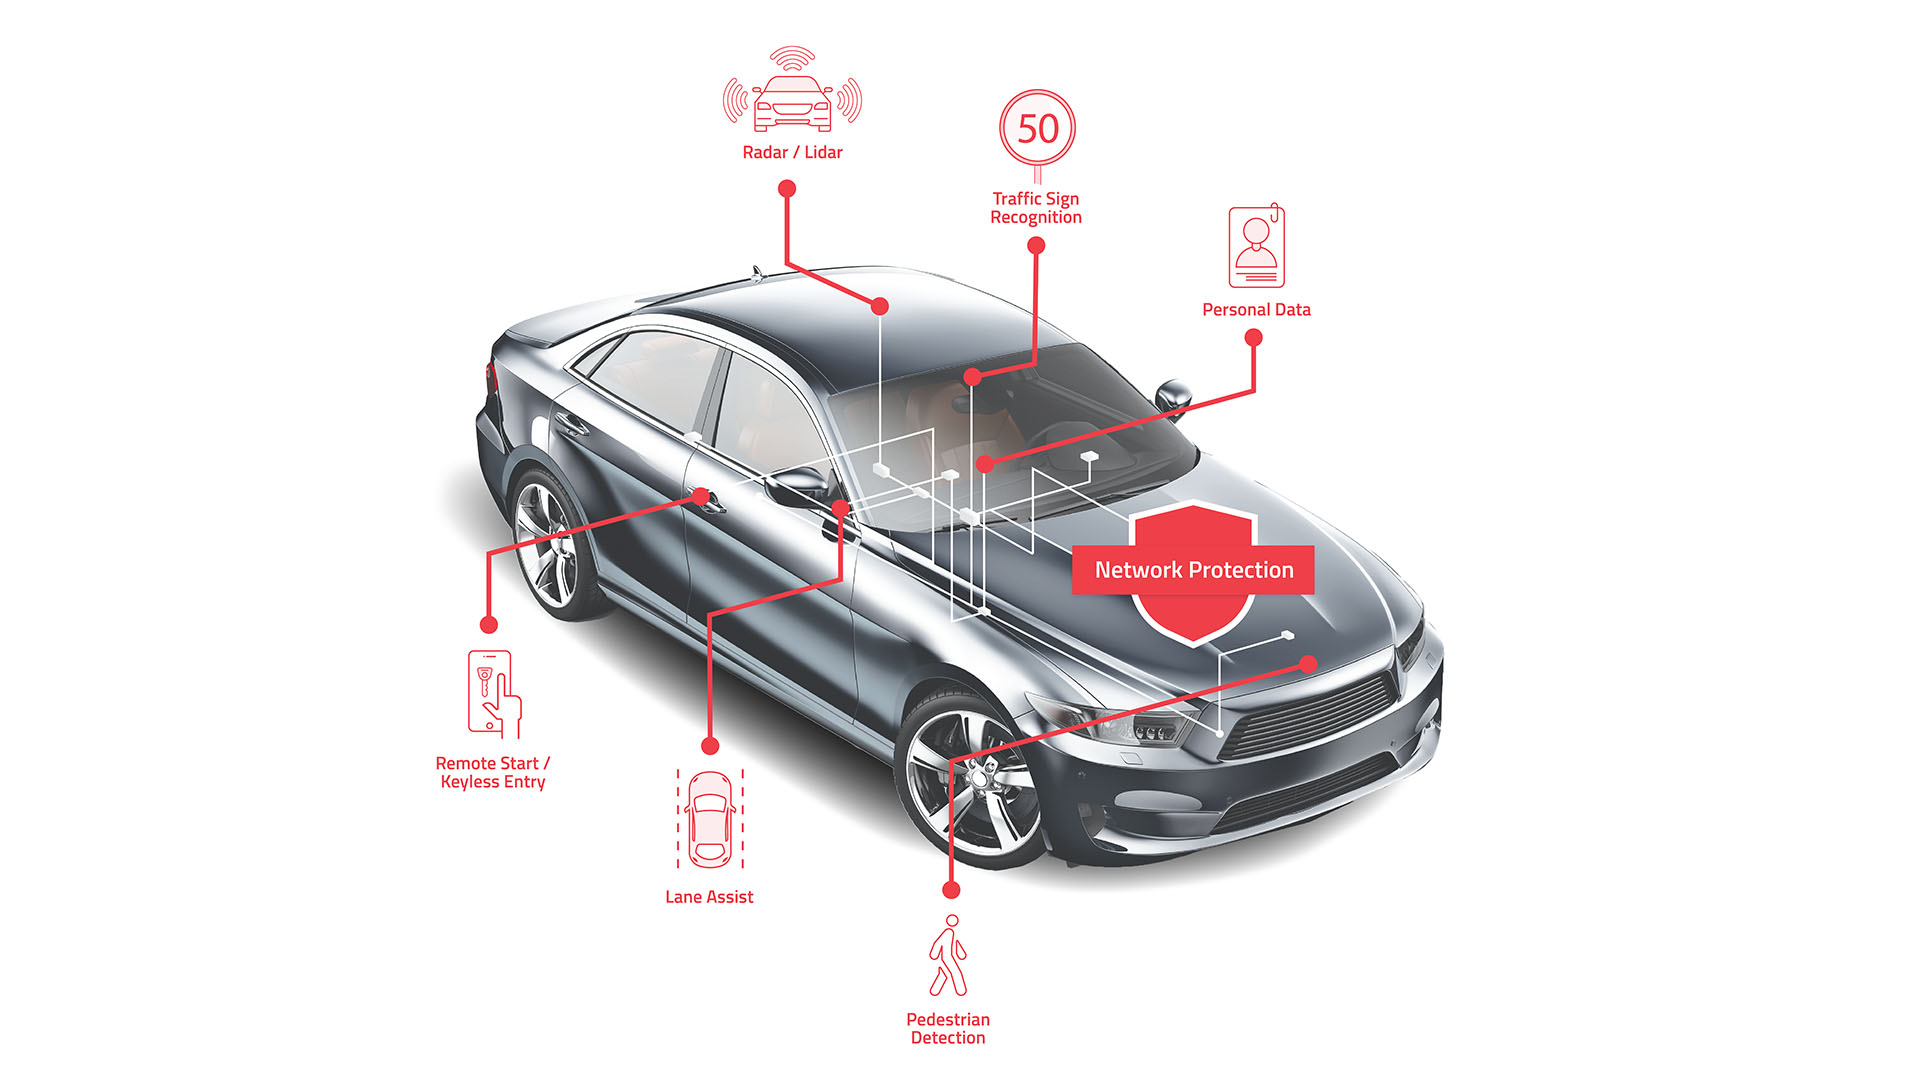 Telematics, ECU, Electronic Control Units, In-Vehicle Network, Automotive, Ethernet, Harness, NNG, Arilou, Cyber Security, Cybersecurity, cyber-security, Automotive Ethernet, CAN Bus